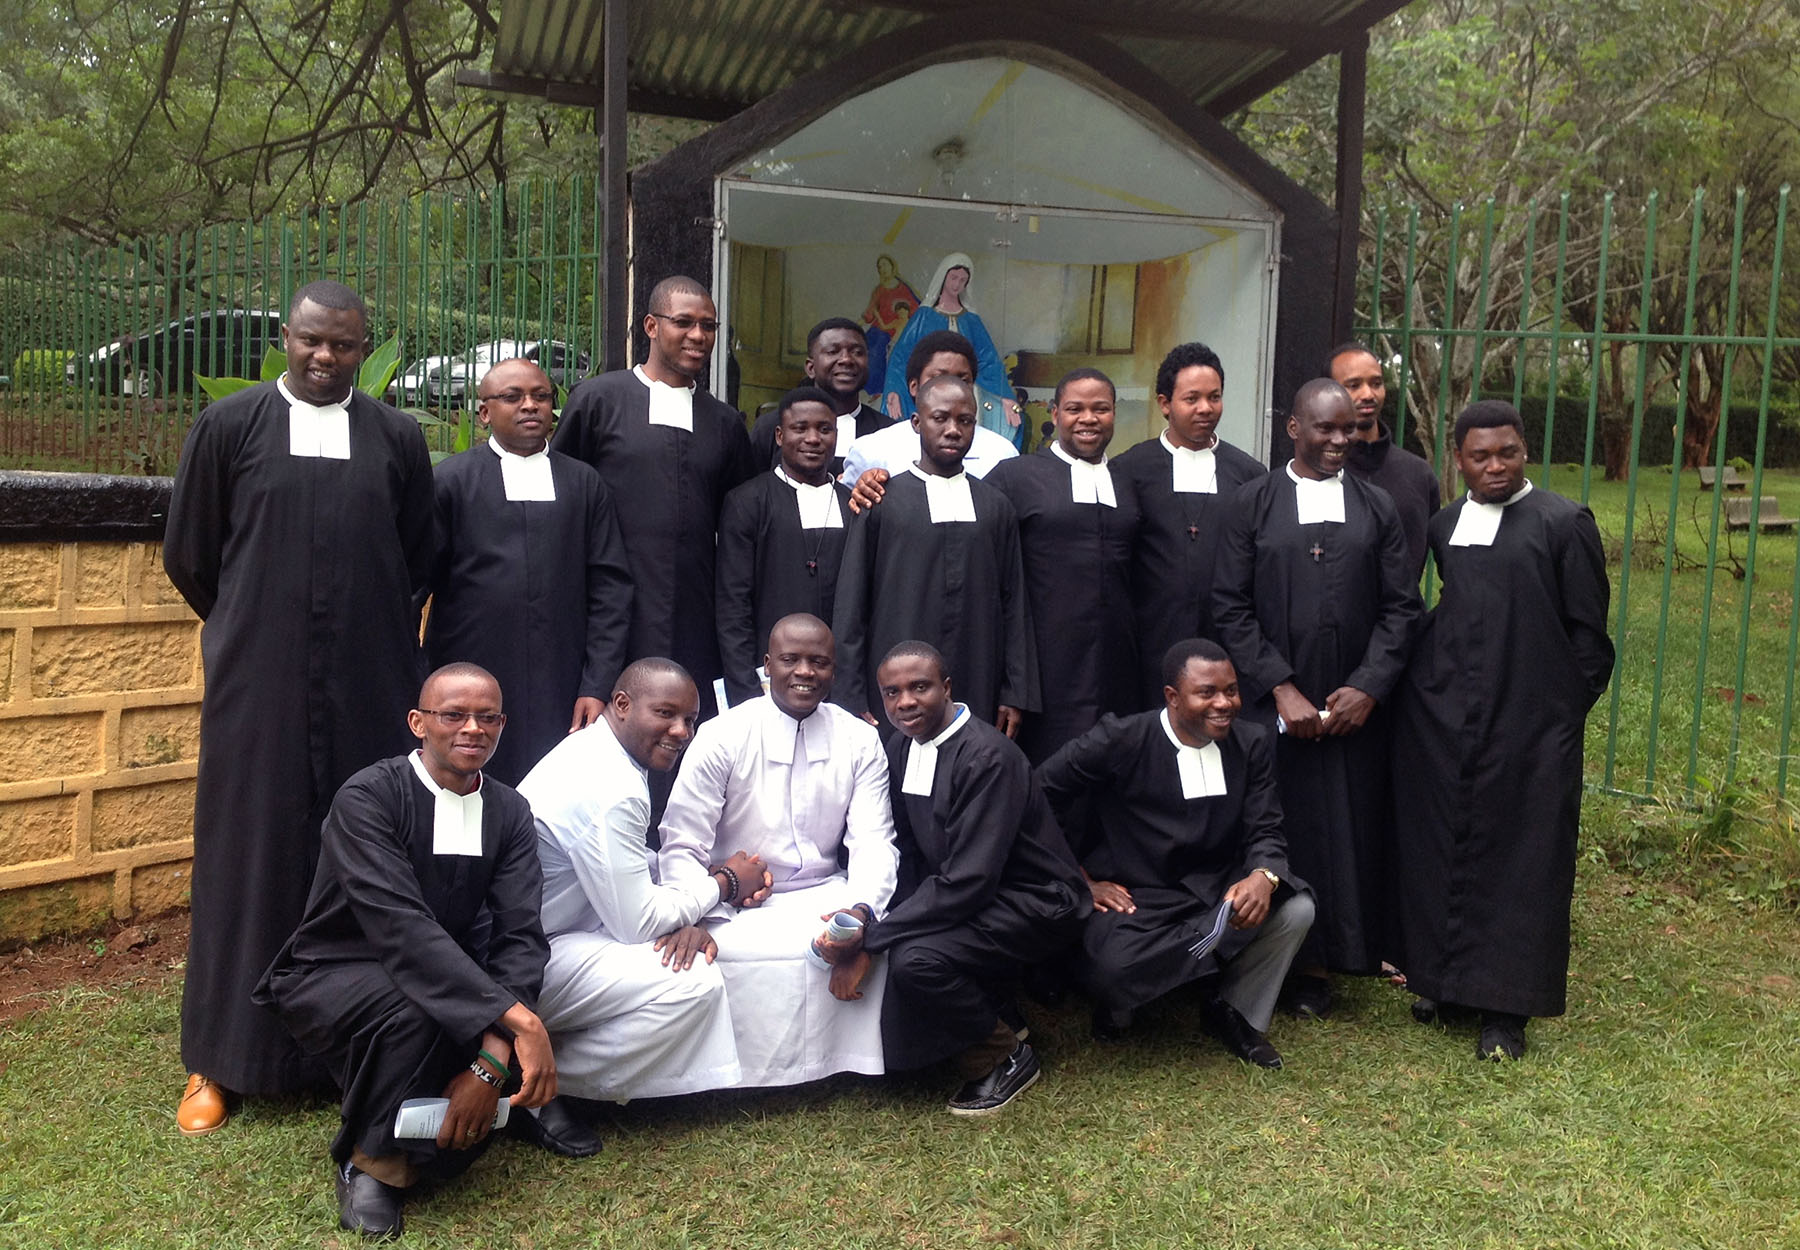 Scholastics with the Newly Professed Bros